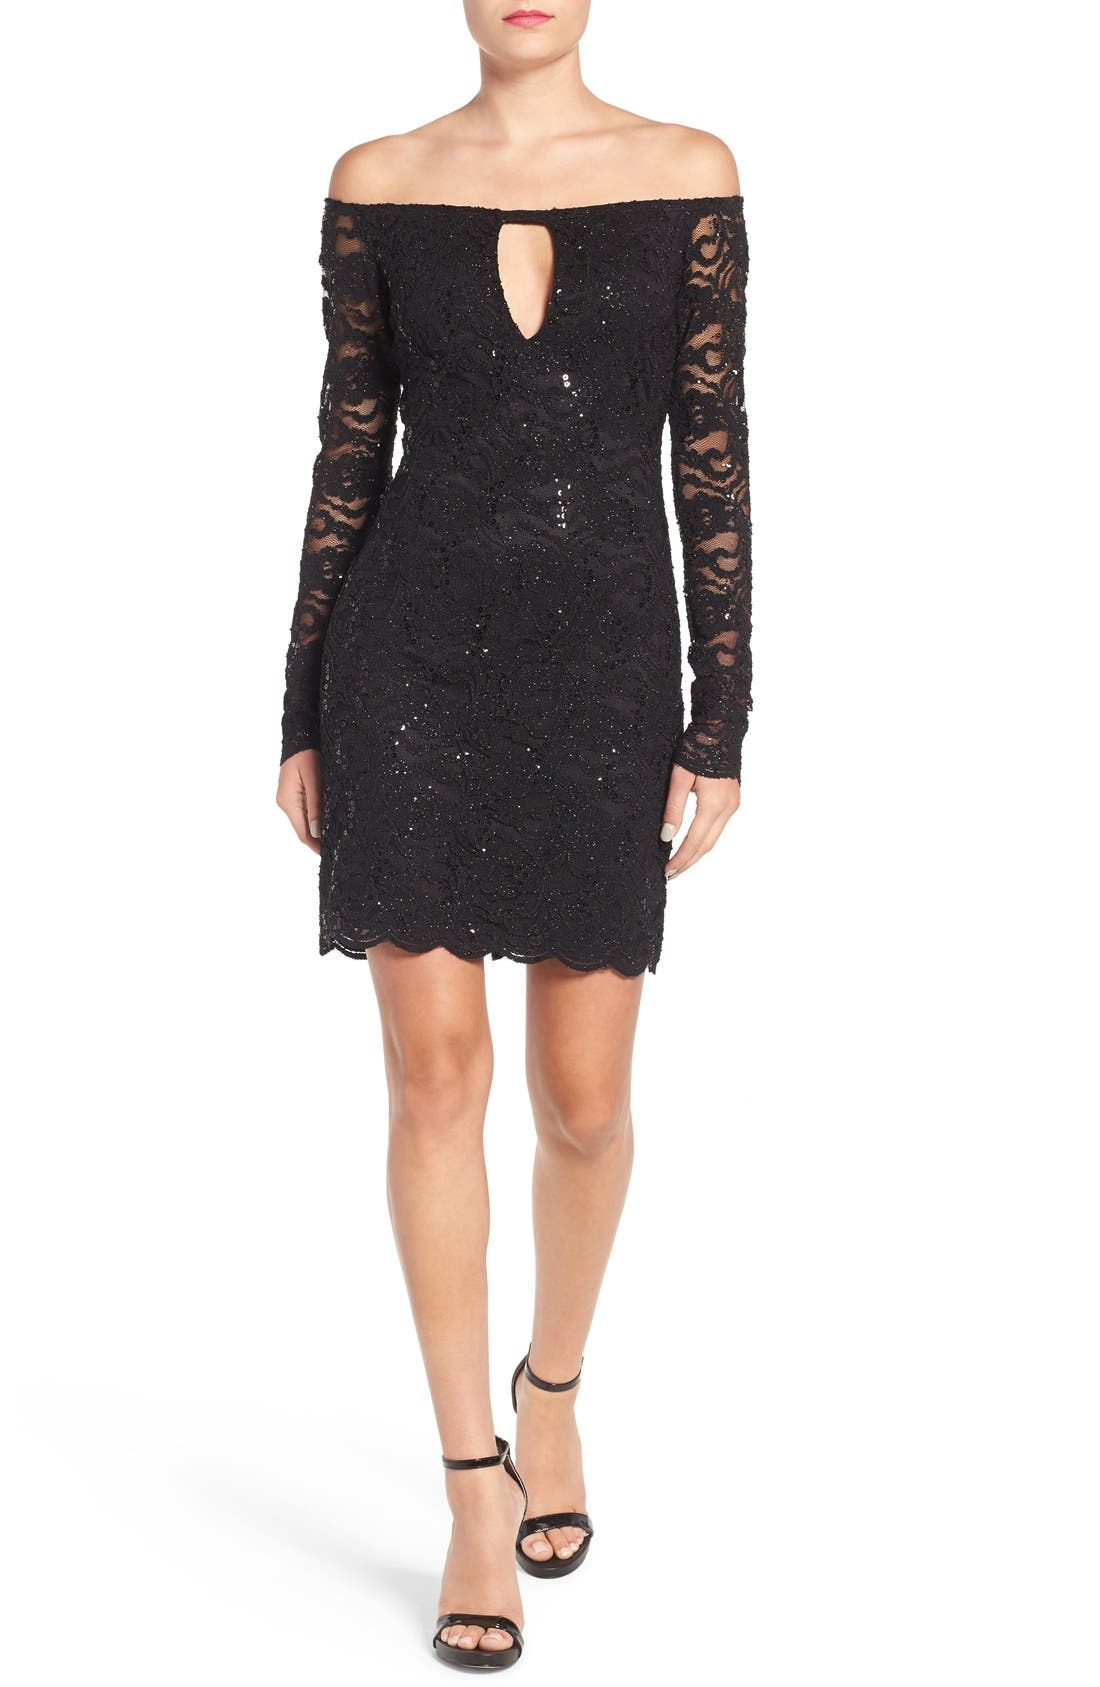 Alternate Image 1 Selected - Jump Apparel Lace Off the Shoulder Body-Con Dress